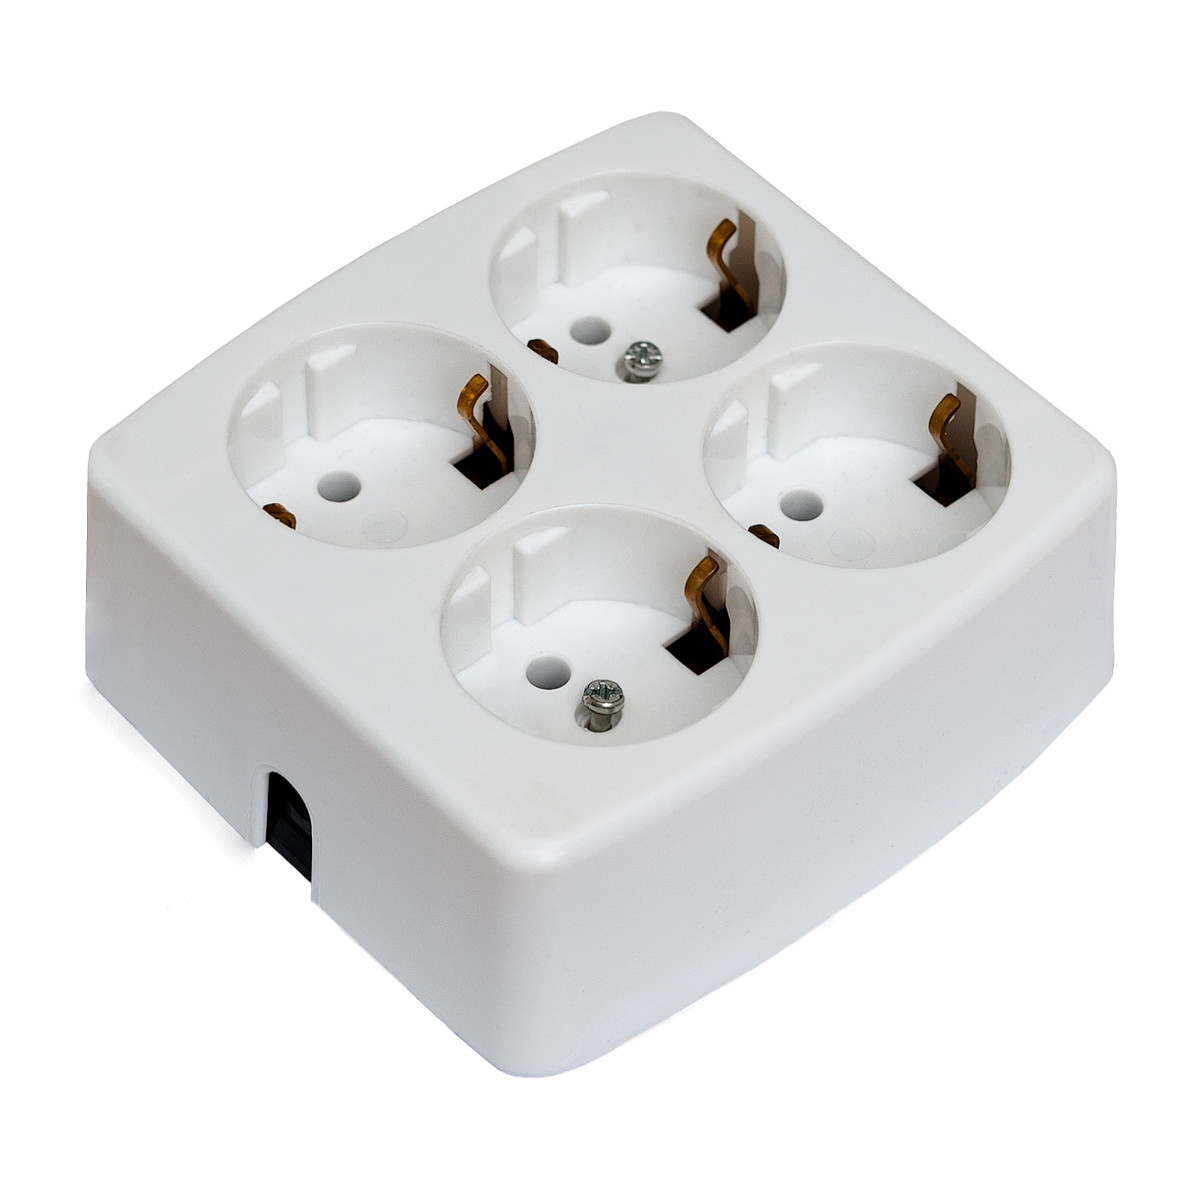 4 Socket Outlet White